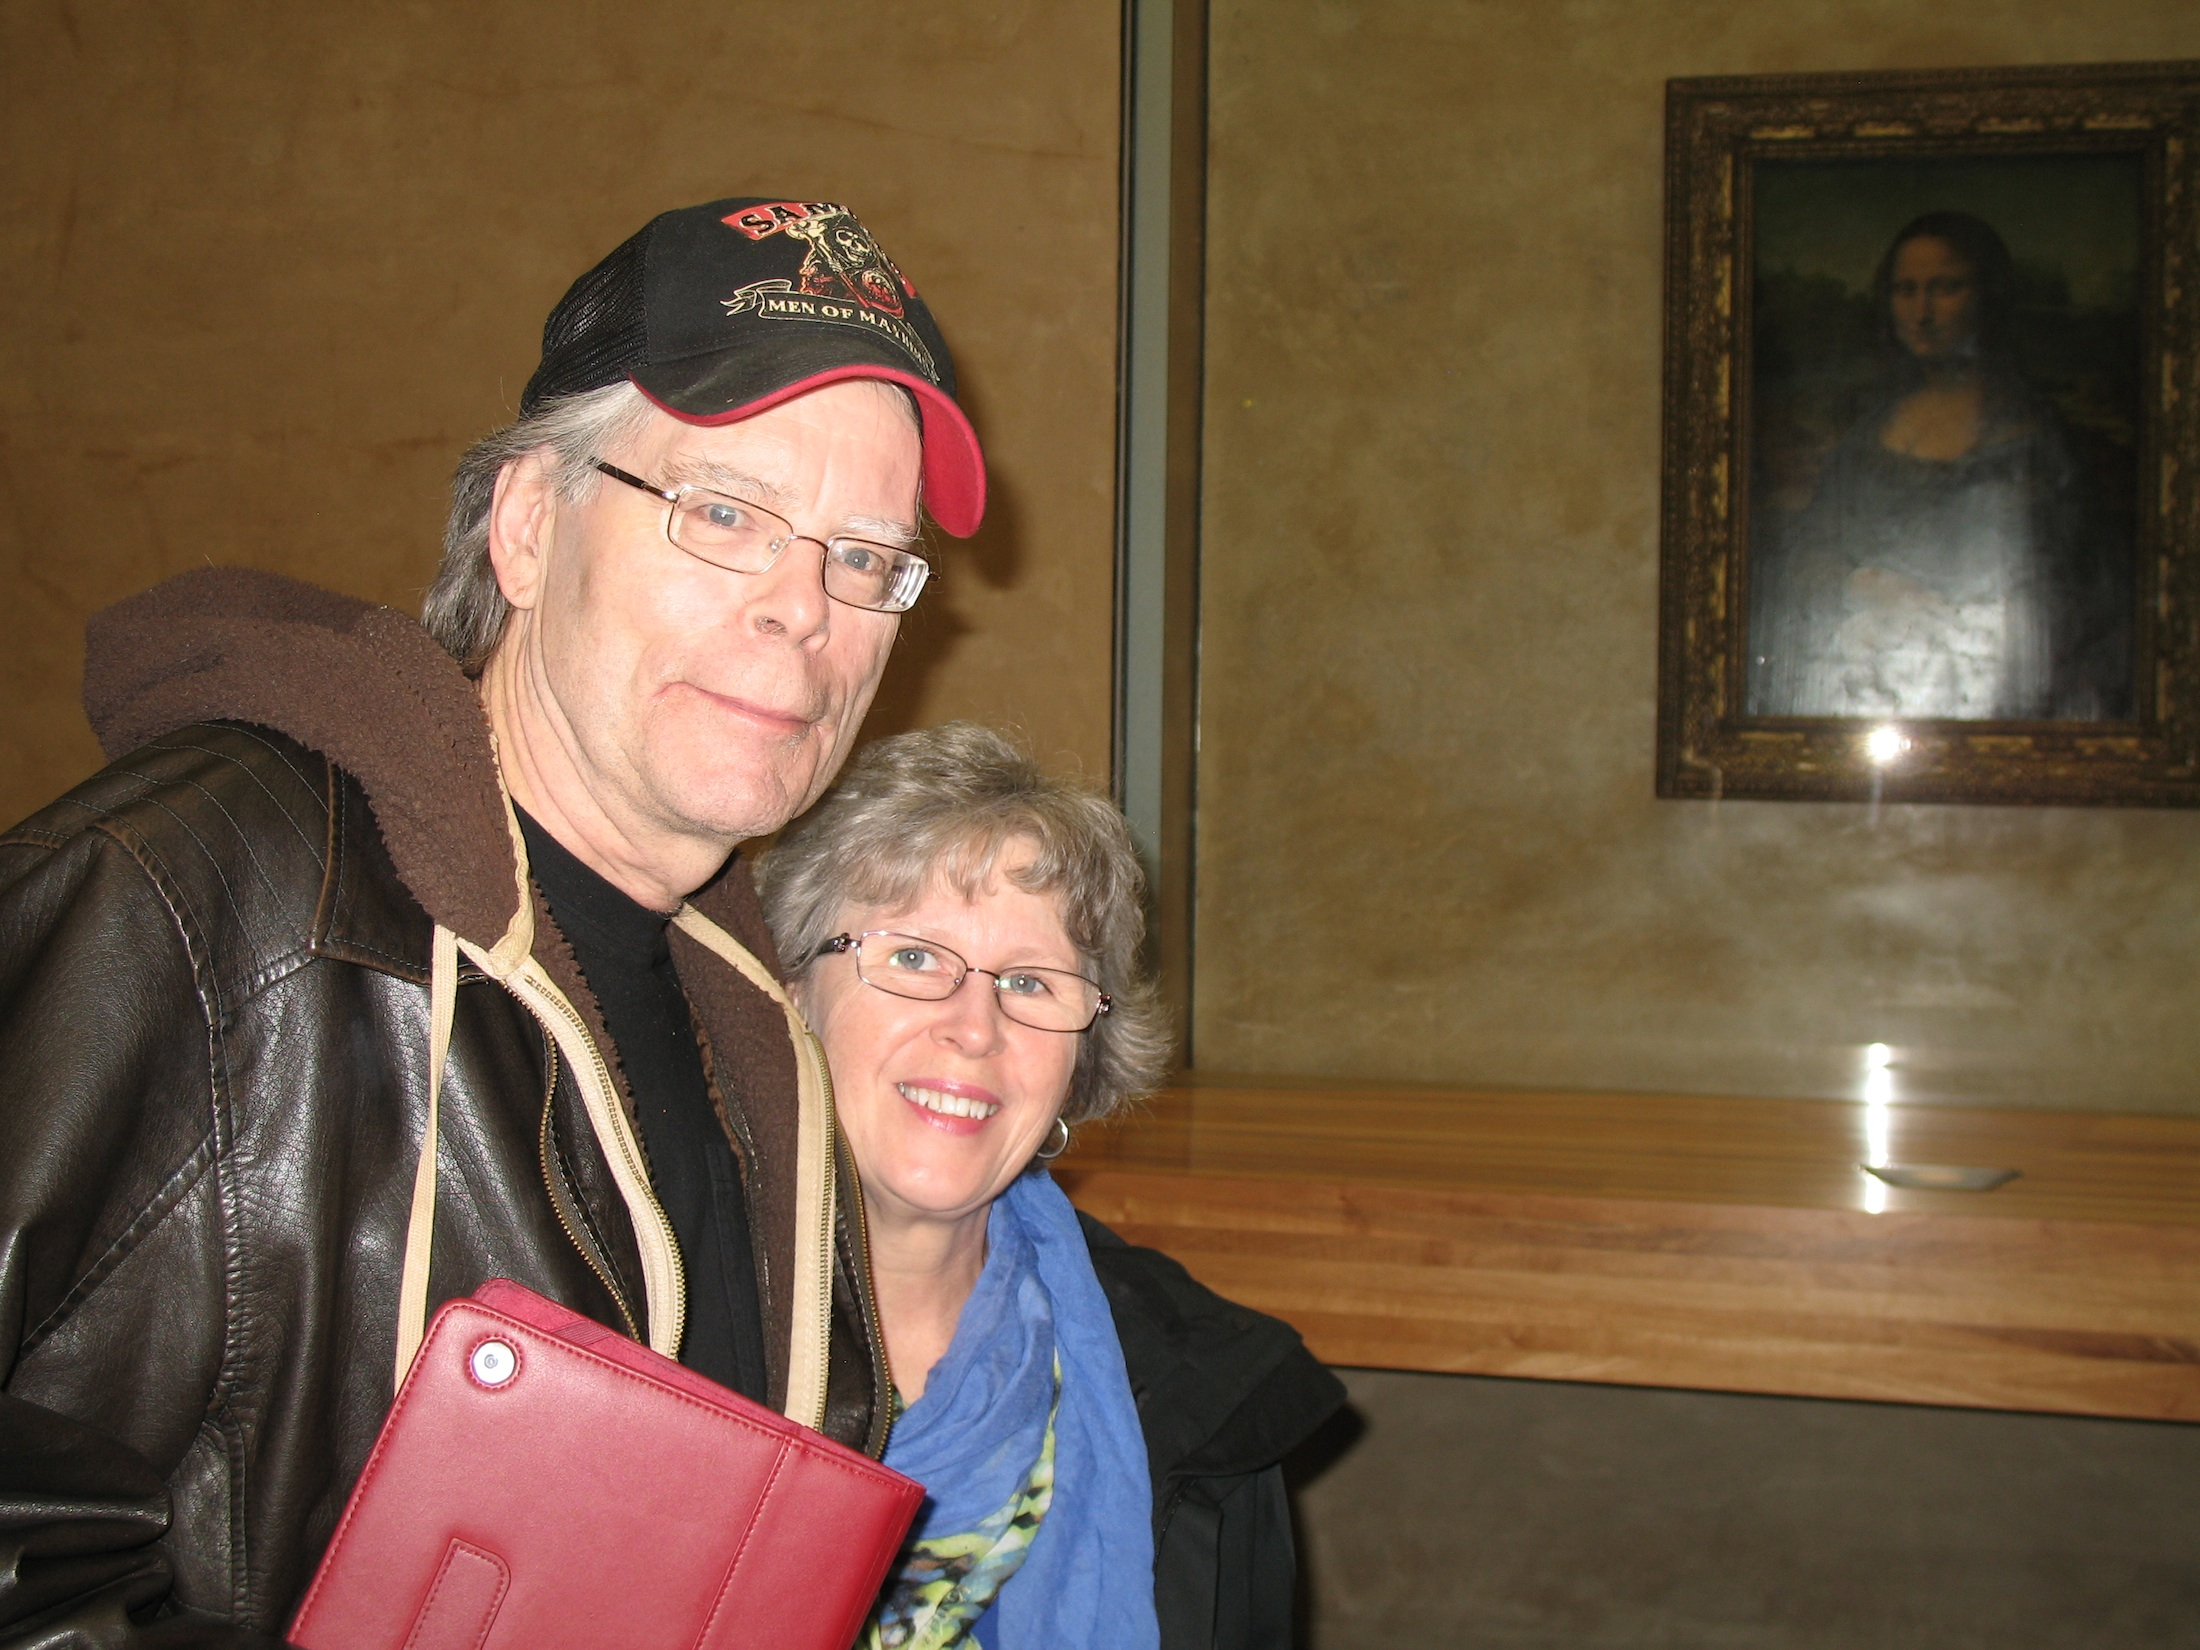 Stephen King & Marsha at The Louvre Mona Lisa